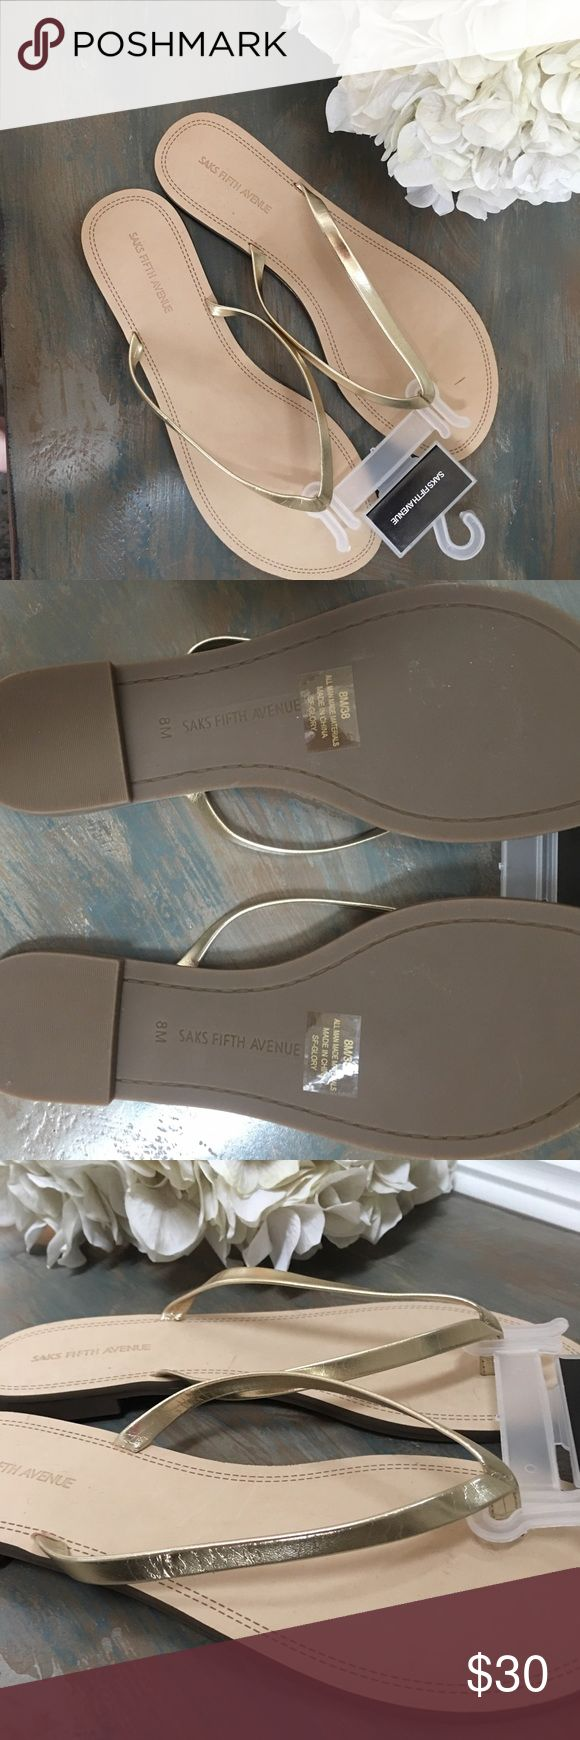 Gold flip flops/sandals Brand new with tags!  Gold flip flops from Saks fifth avenue.  Adorable! Size 8. Saks Fifth Avenue Shoes Sandals